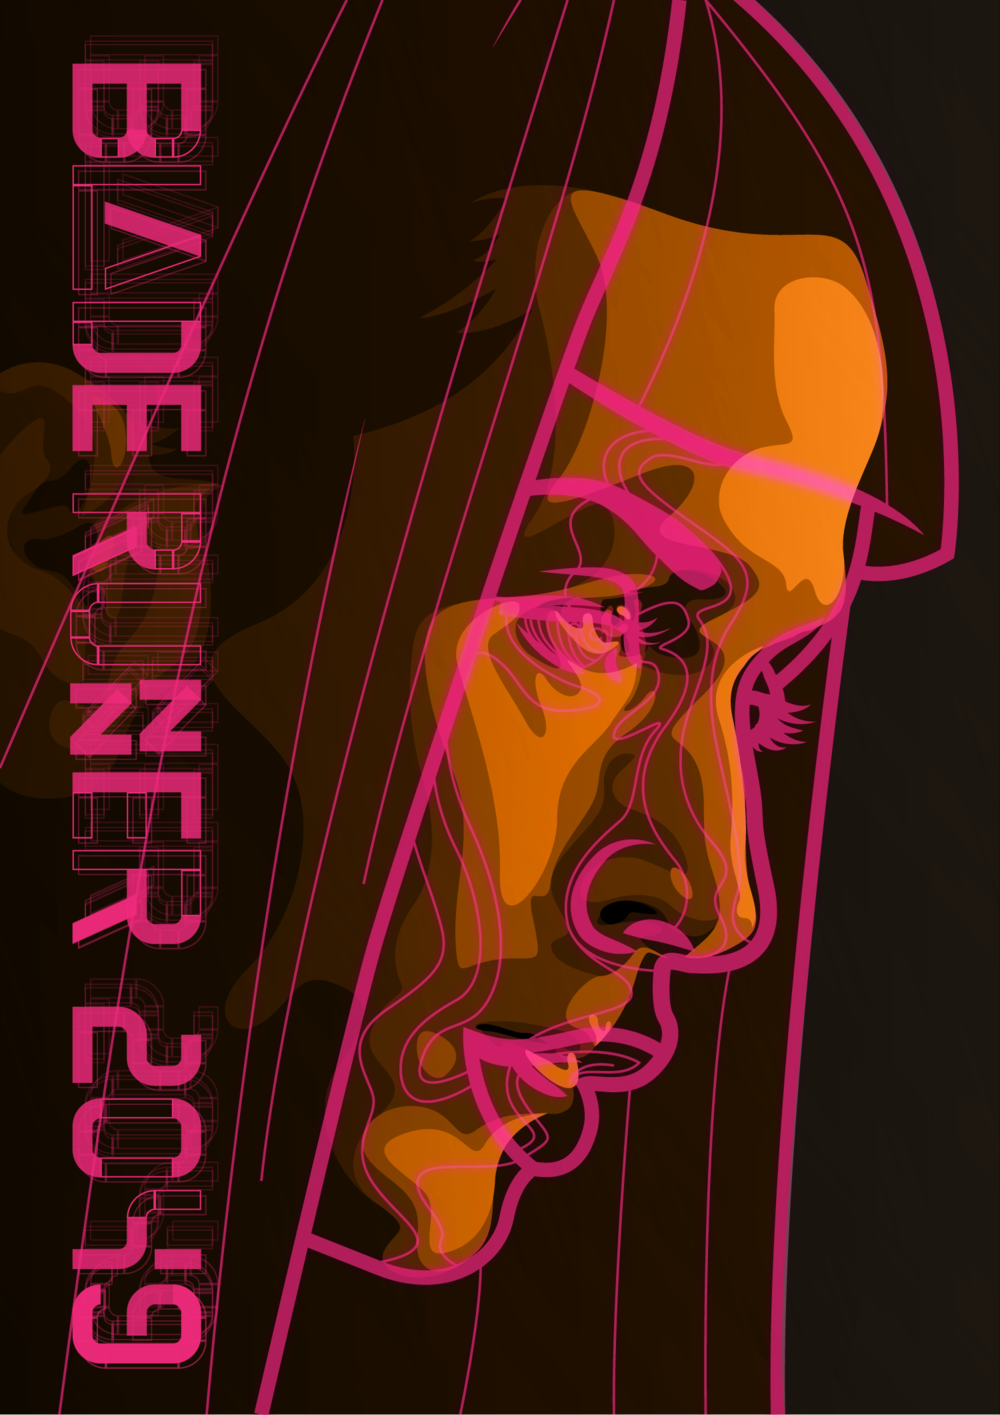 Movie poster for a competition.